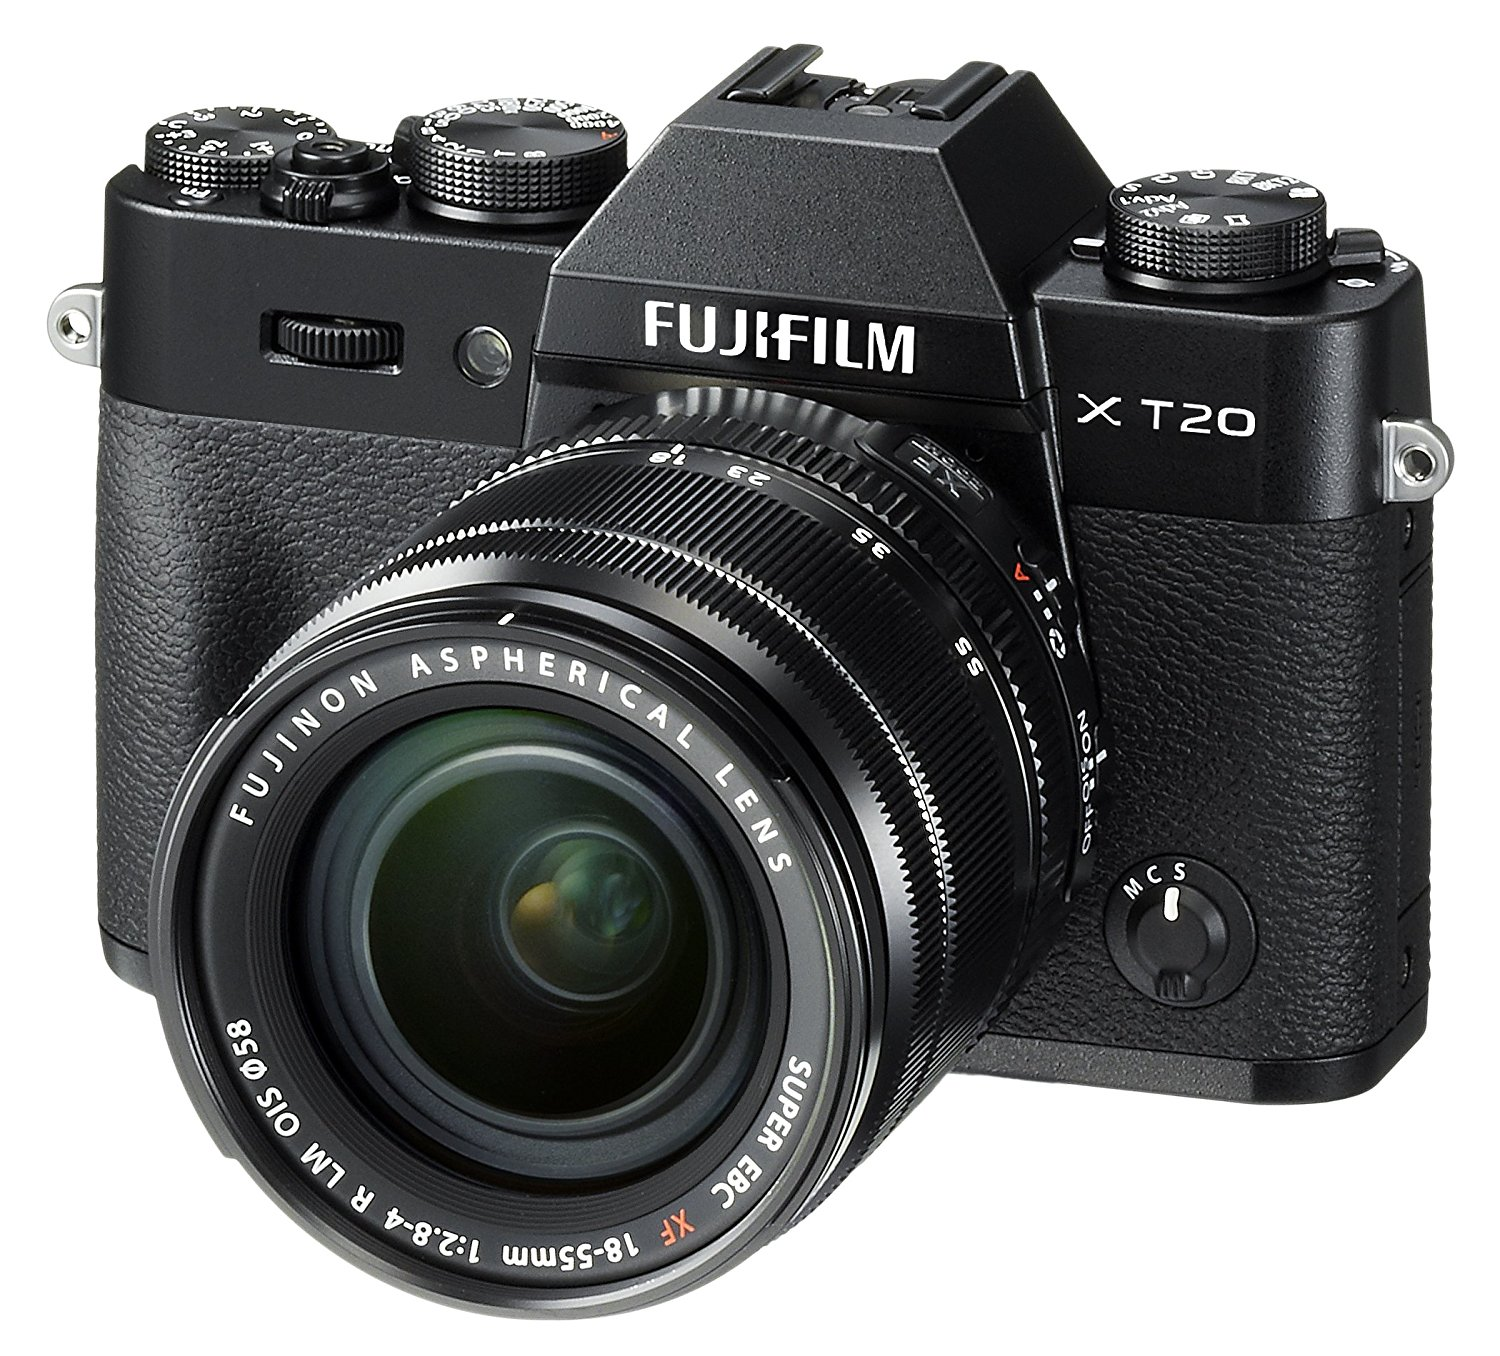 Hot Deal: Fujifilm X-T20 for $836.89 at Amazon!